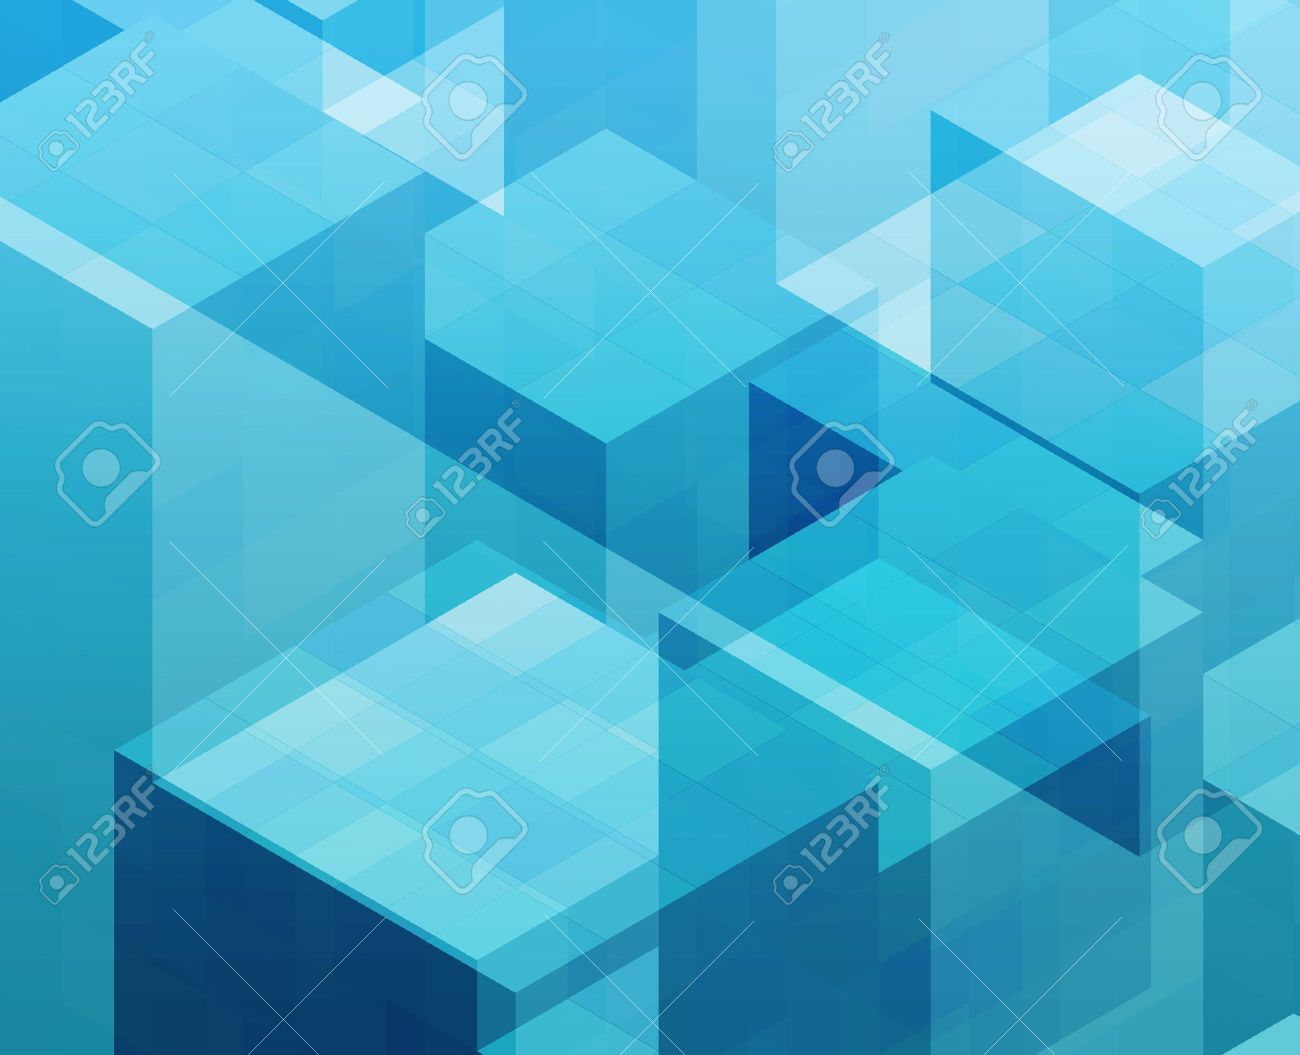 Abstract illustration wallpaper of geometric shape cubes Stock Photo - 3782763